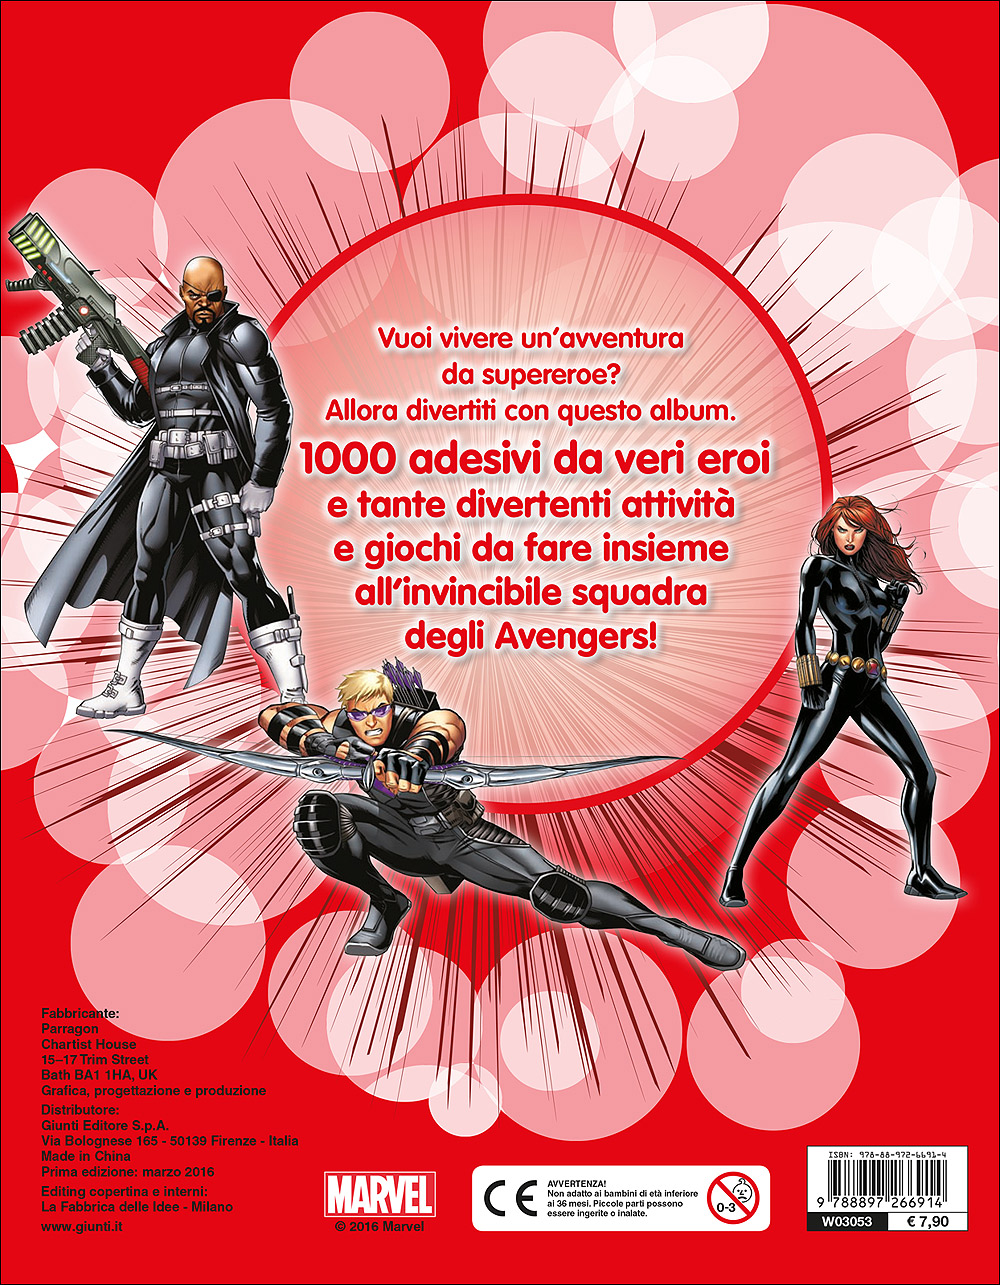 500/1000 Stickers - Avengers Assemble. 1000 Stickers